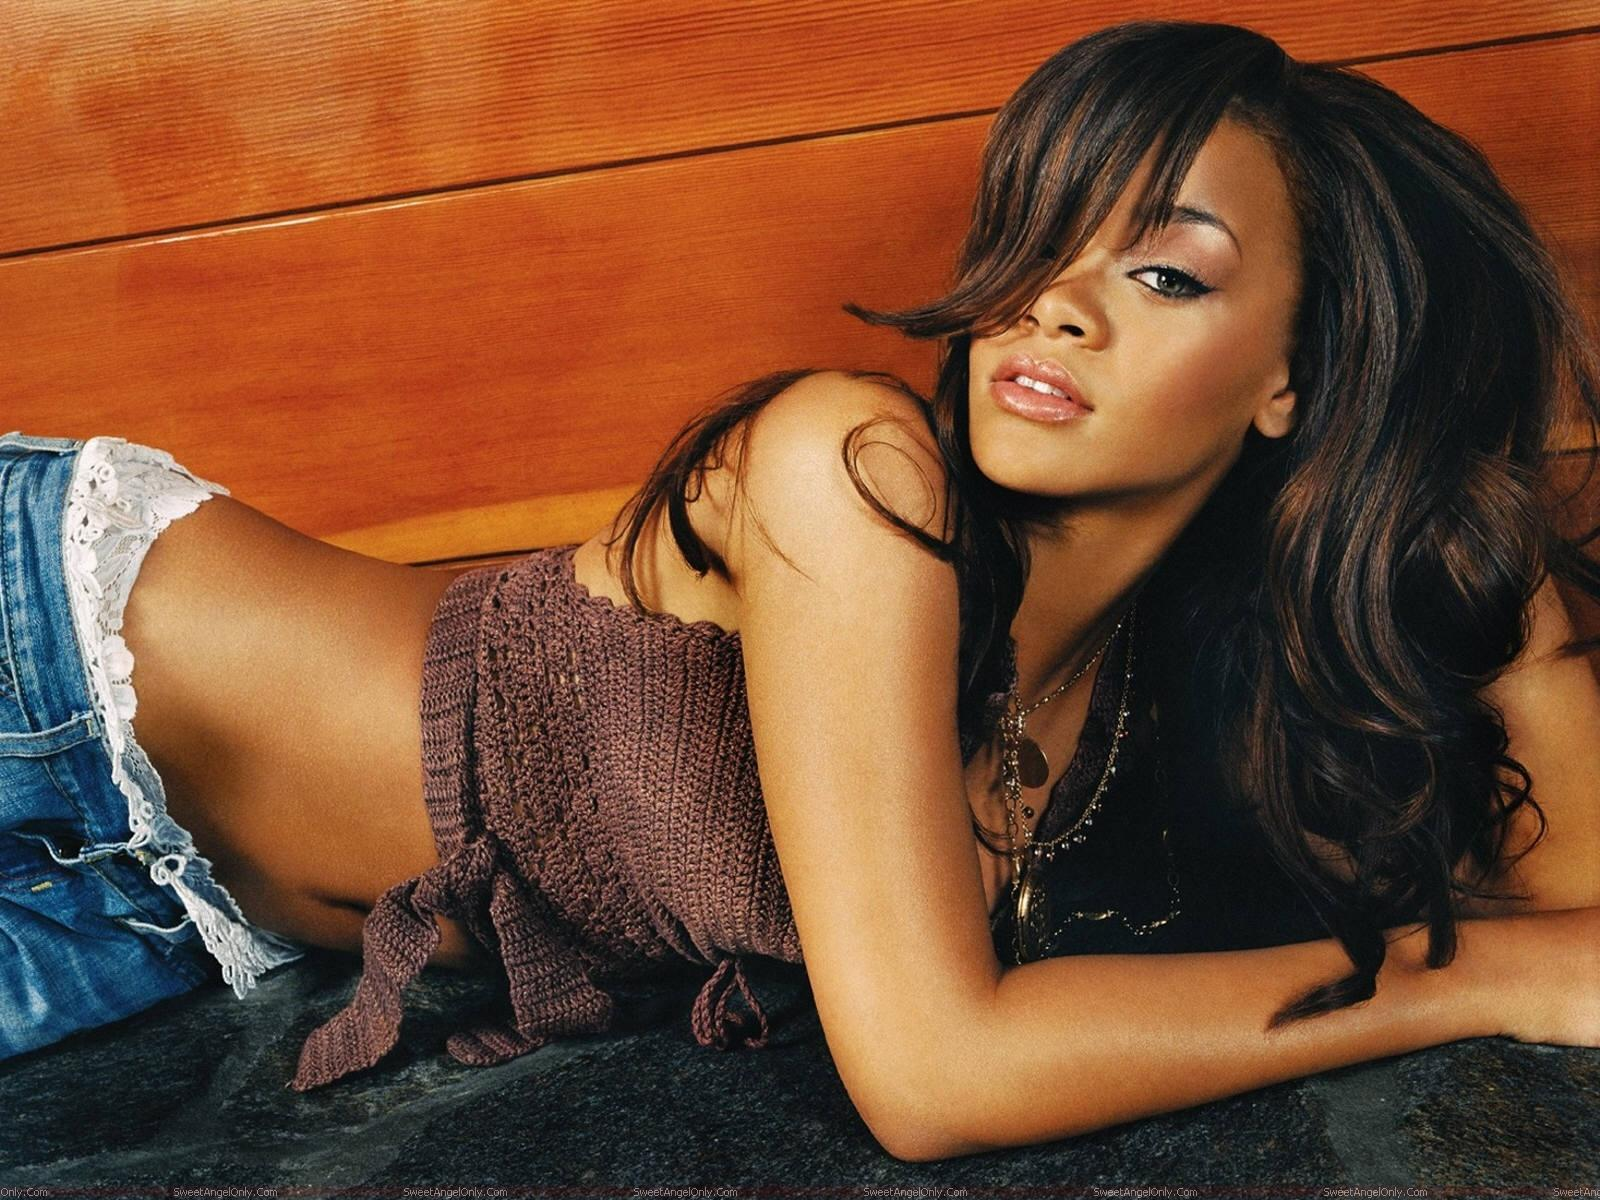 http://1.bp.blogspot.com/-ZoTv4r9EbWM/Tirs6tH26vI/AAAAAAAAHsY/MvdB55mMFFo/s1600/rihanna_wallpaper_on_ground.jpg